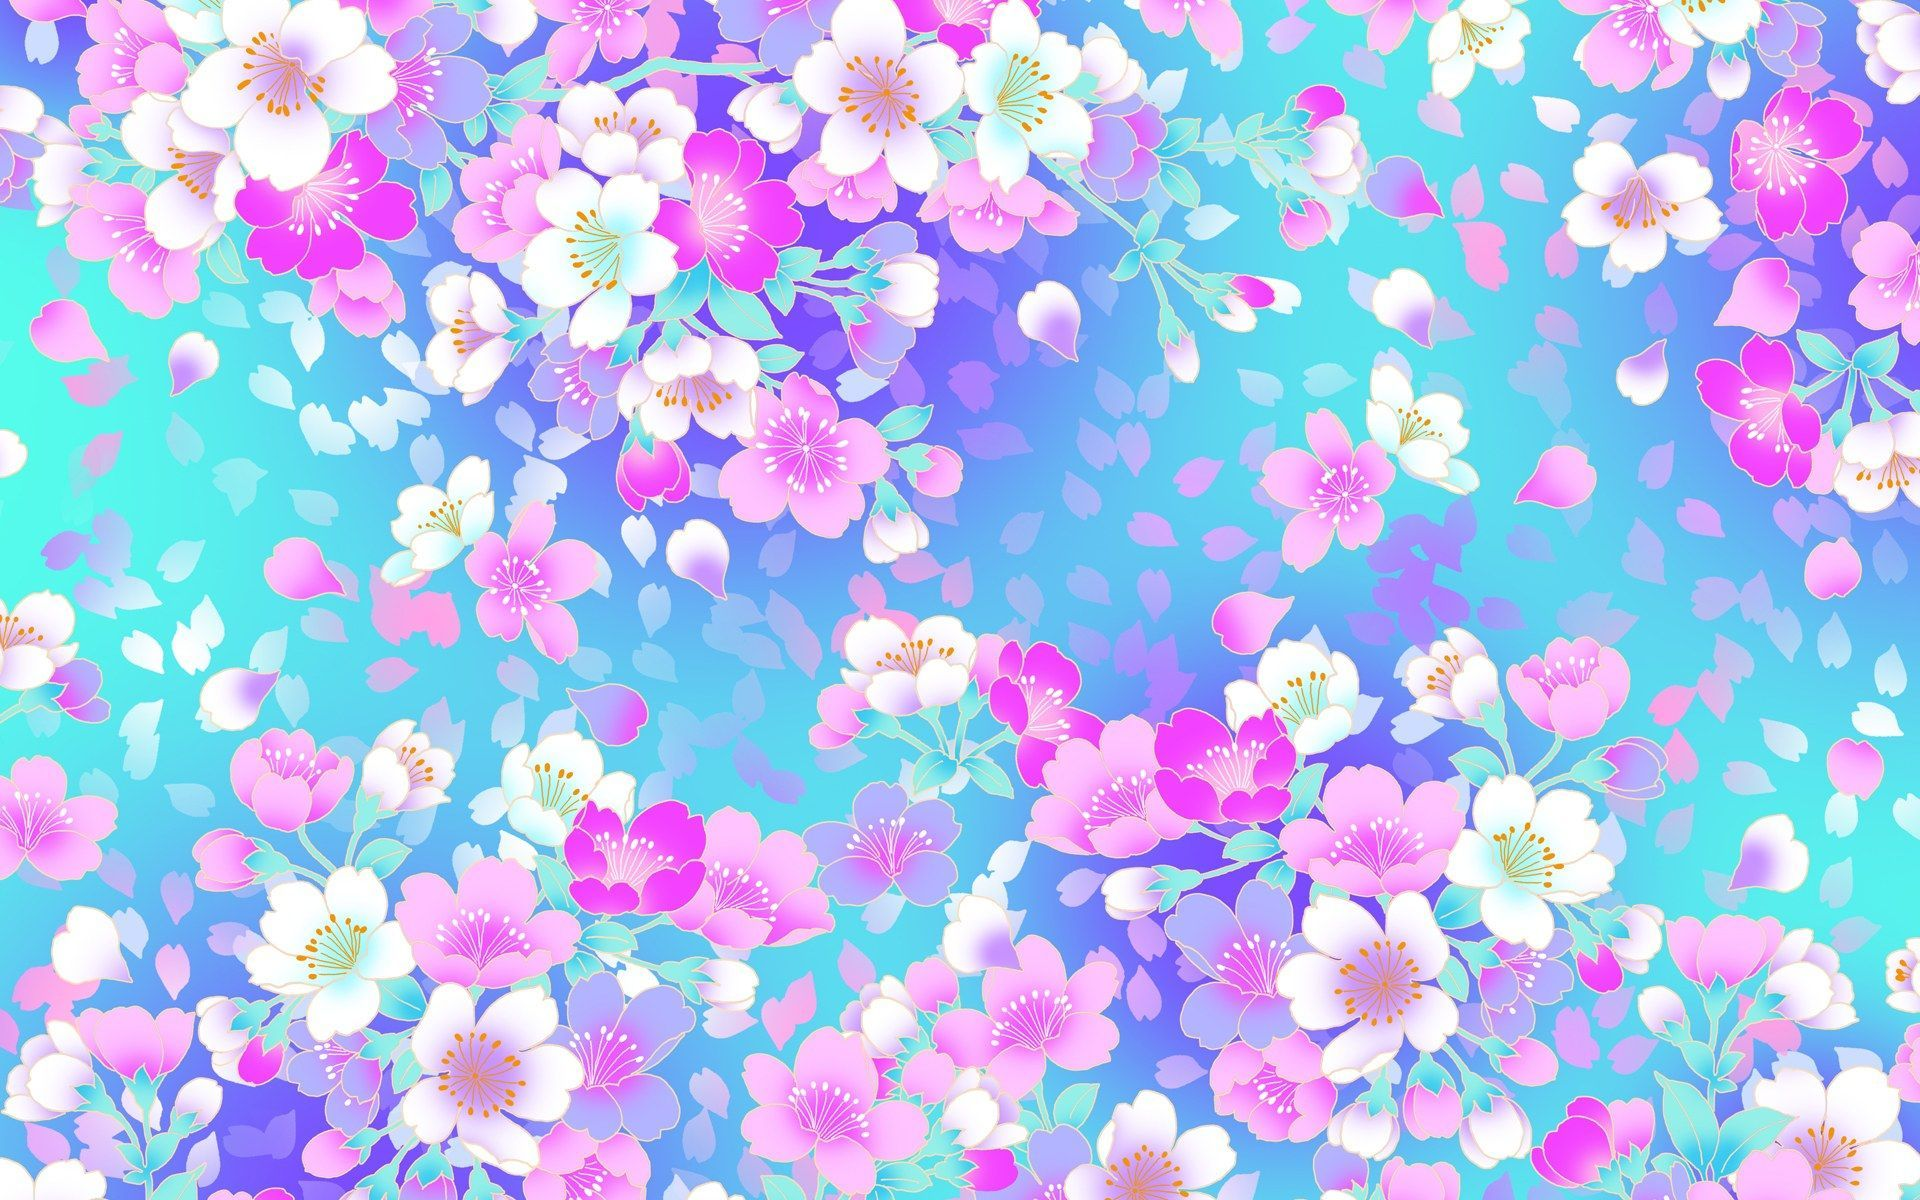 Blue Girly Background For Desktop Wallpaper Vintage Floral